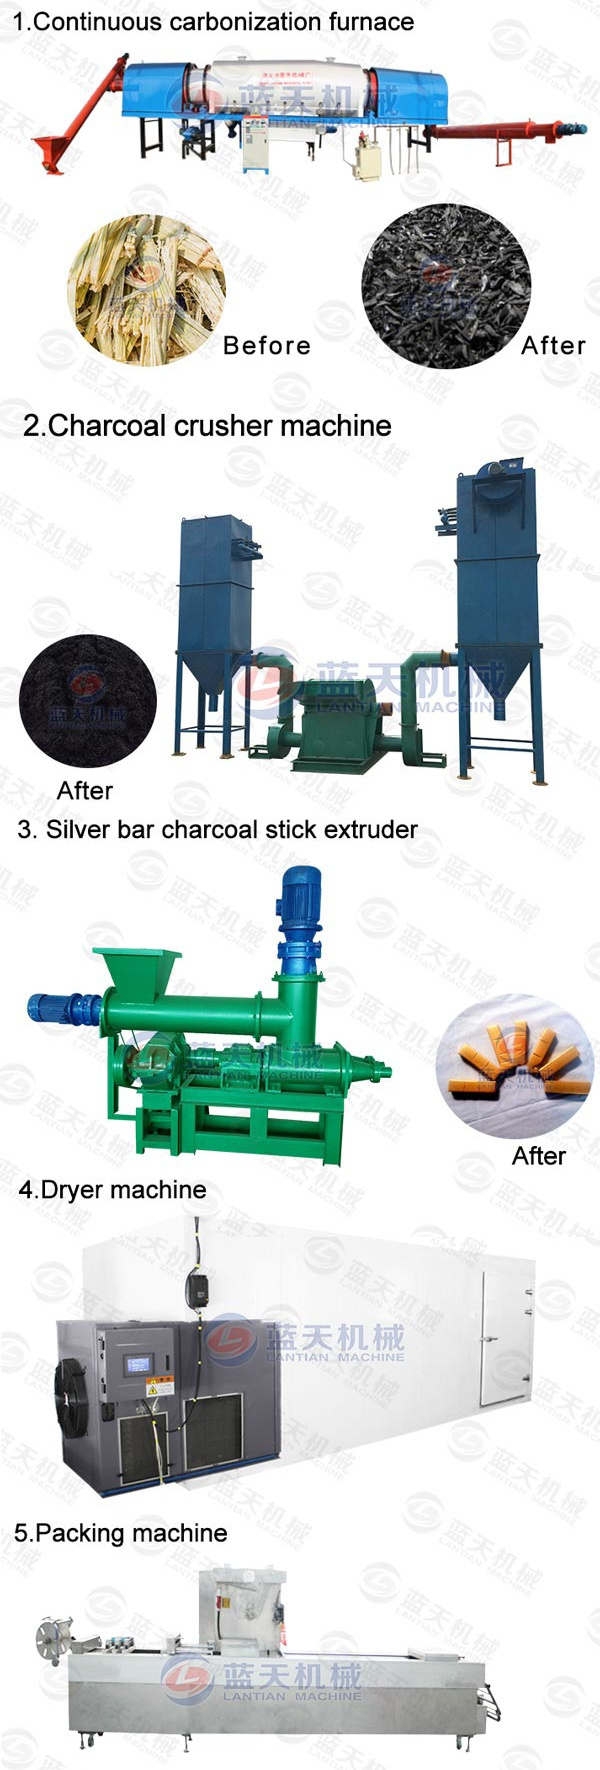 Production process of charcoal extruder